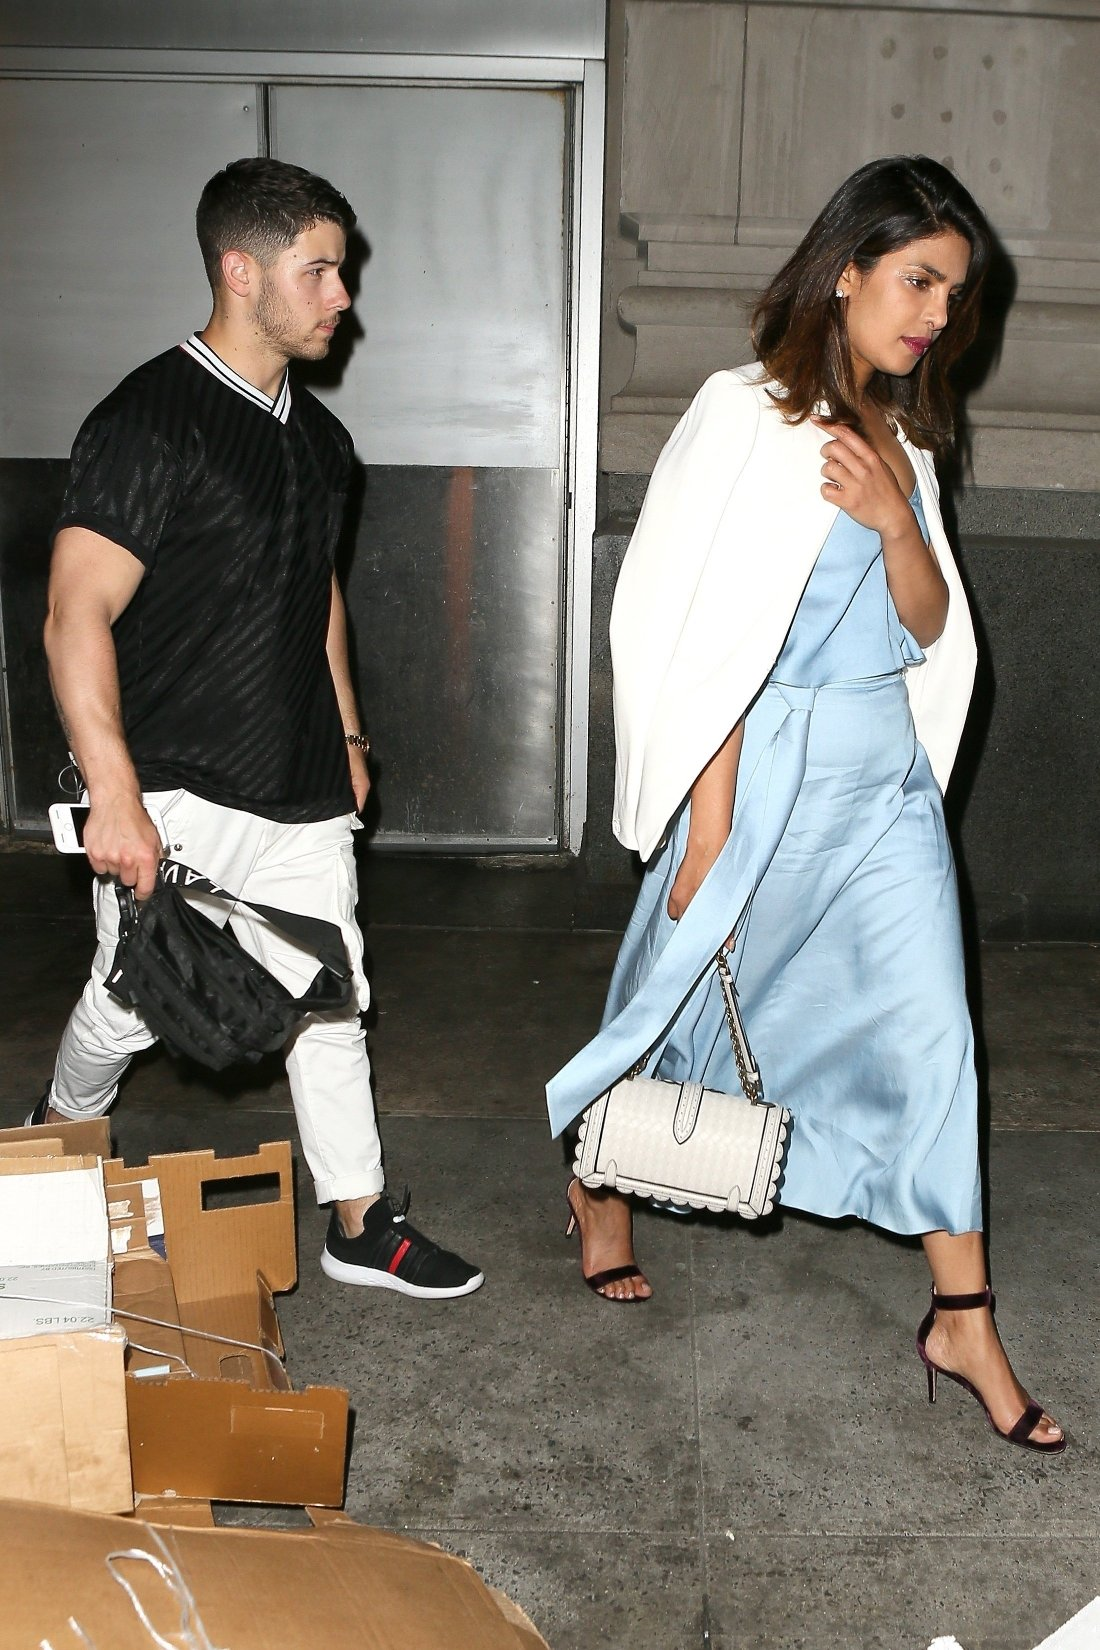 New York, NY  - Priyanka Chopra and Nick Jonas try to keep a low profile and avoid attention as they sneak out the back door of 'Park Avenue Summer' after having dinner. Priyanka kept her hand over her face as the pair got into the back seat of their waiting car.  Pictured: Priyanka Chopra, Nick Jonas    *UK Clients - Pictures Containing Children Please Pixelate Face Prior To Publication*, Image: 374723659, License: Rights-managed, Restrictions: , Model Release: no, Credit line: Profimedia, AKM-GSI